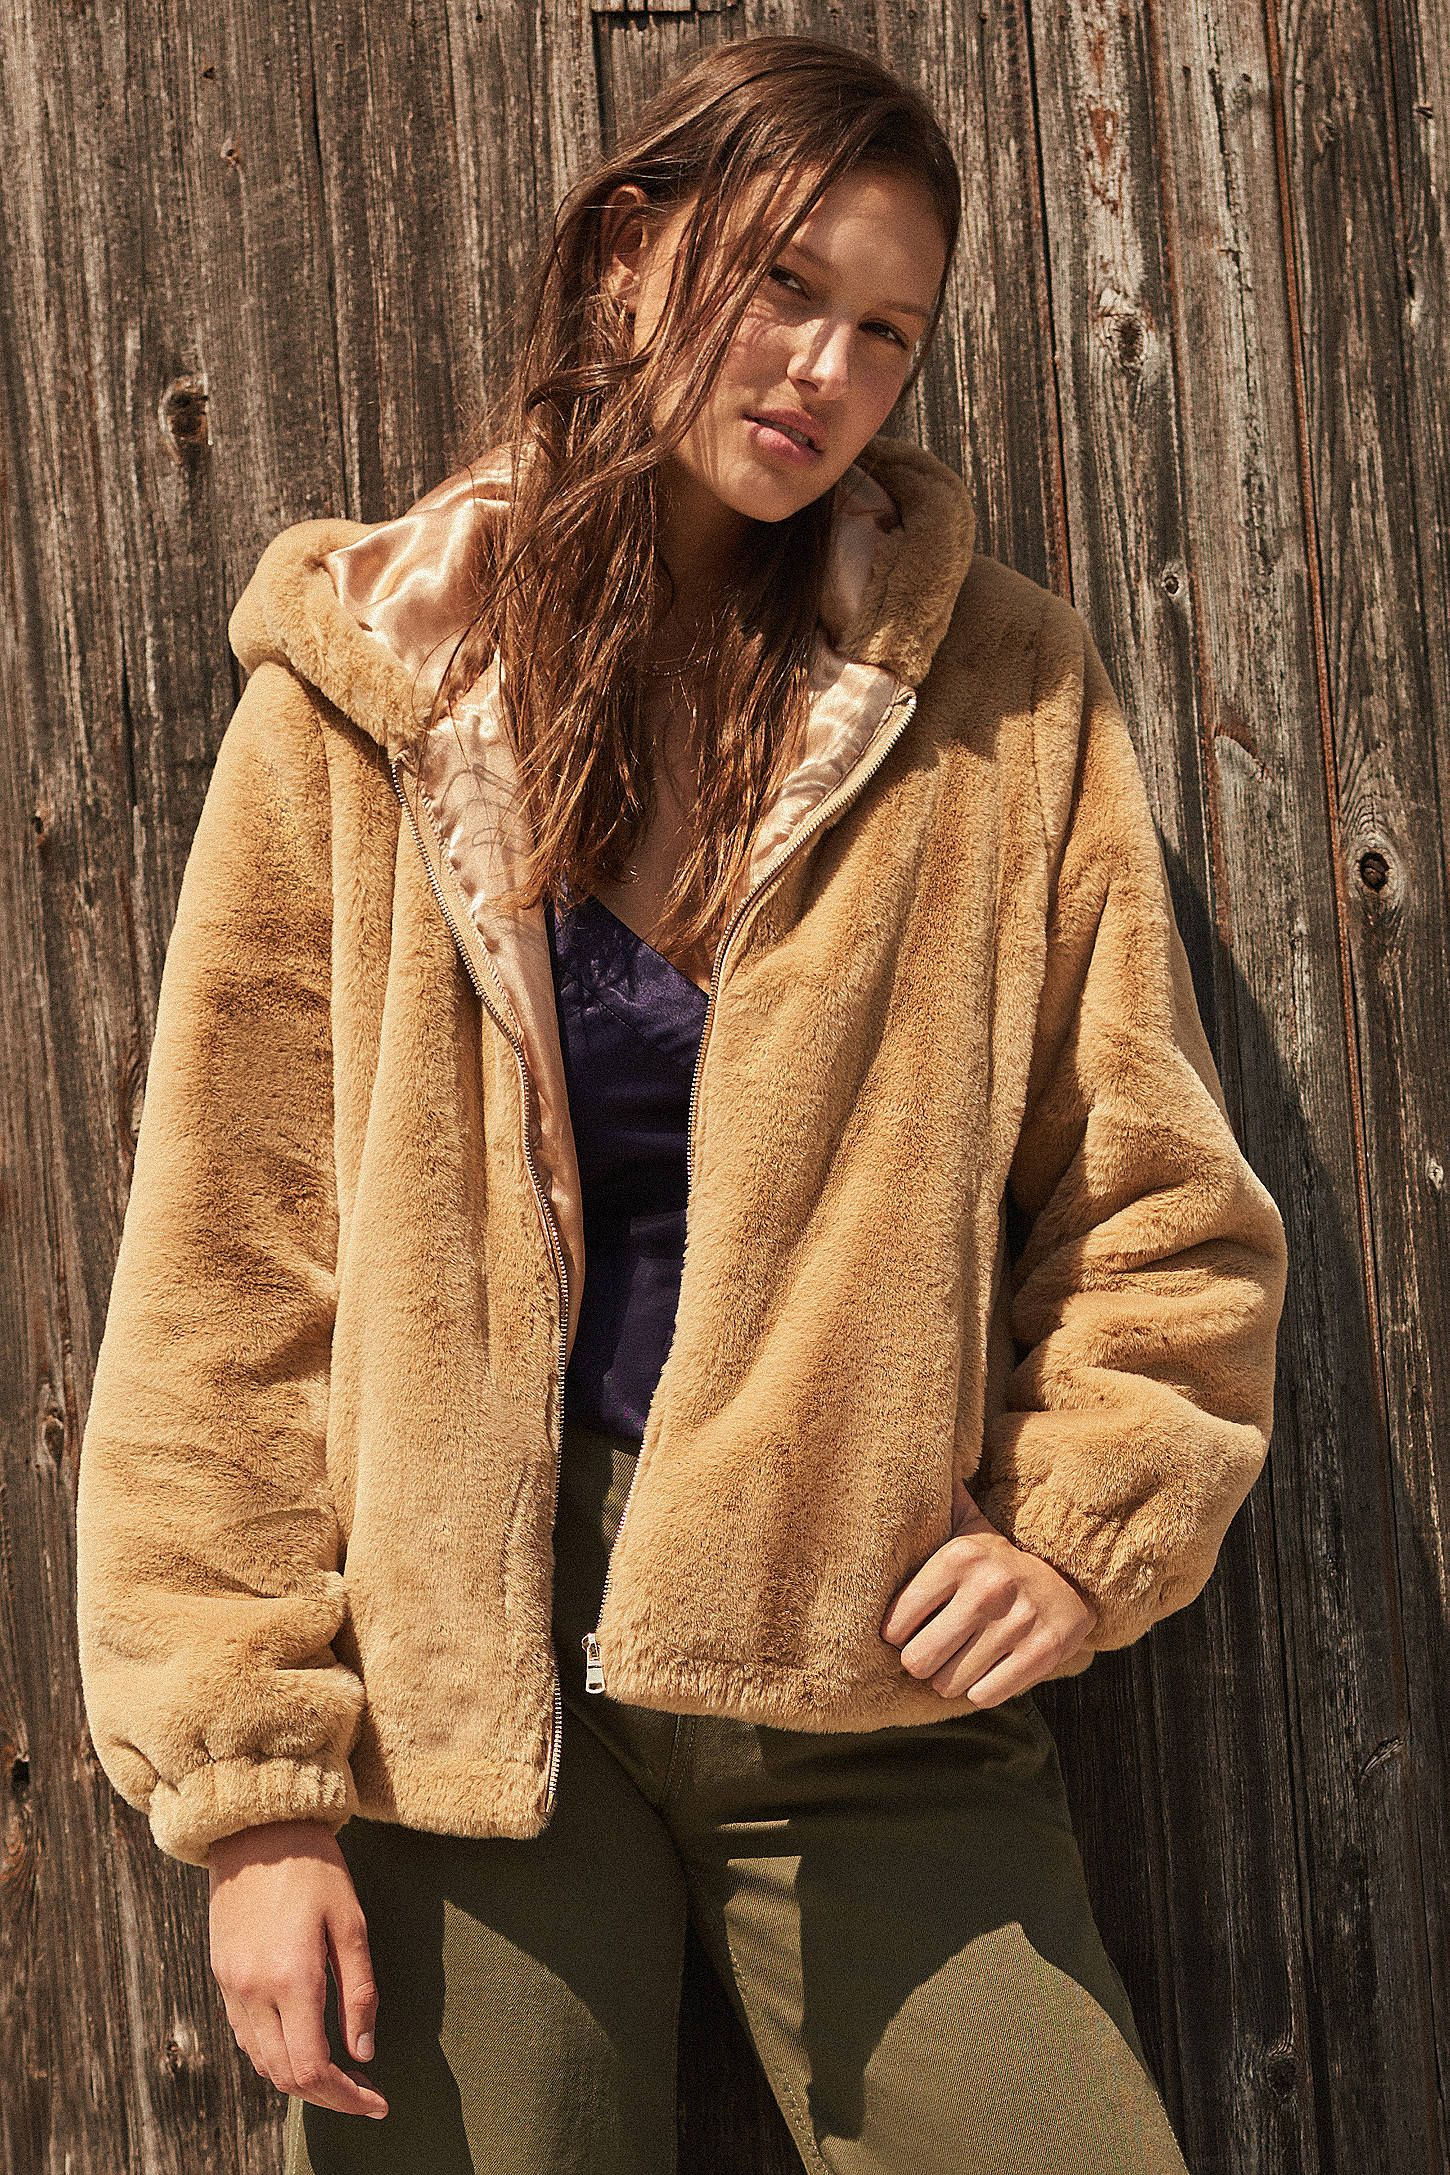 099c4dee4 Shop UO Lilly Zip-Up Faux Fur Jacket at Urban Outfitters today. We ...